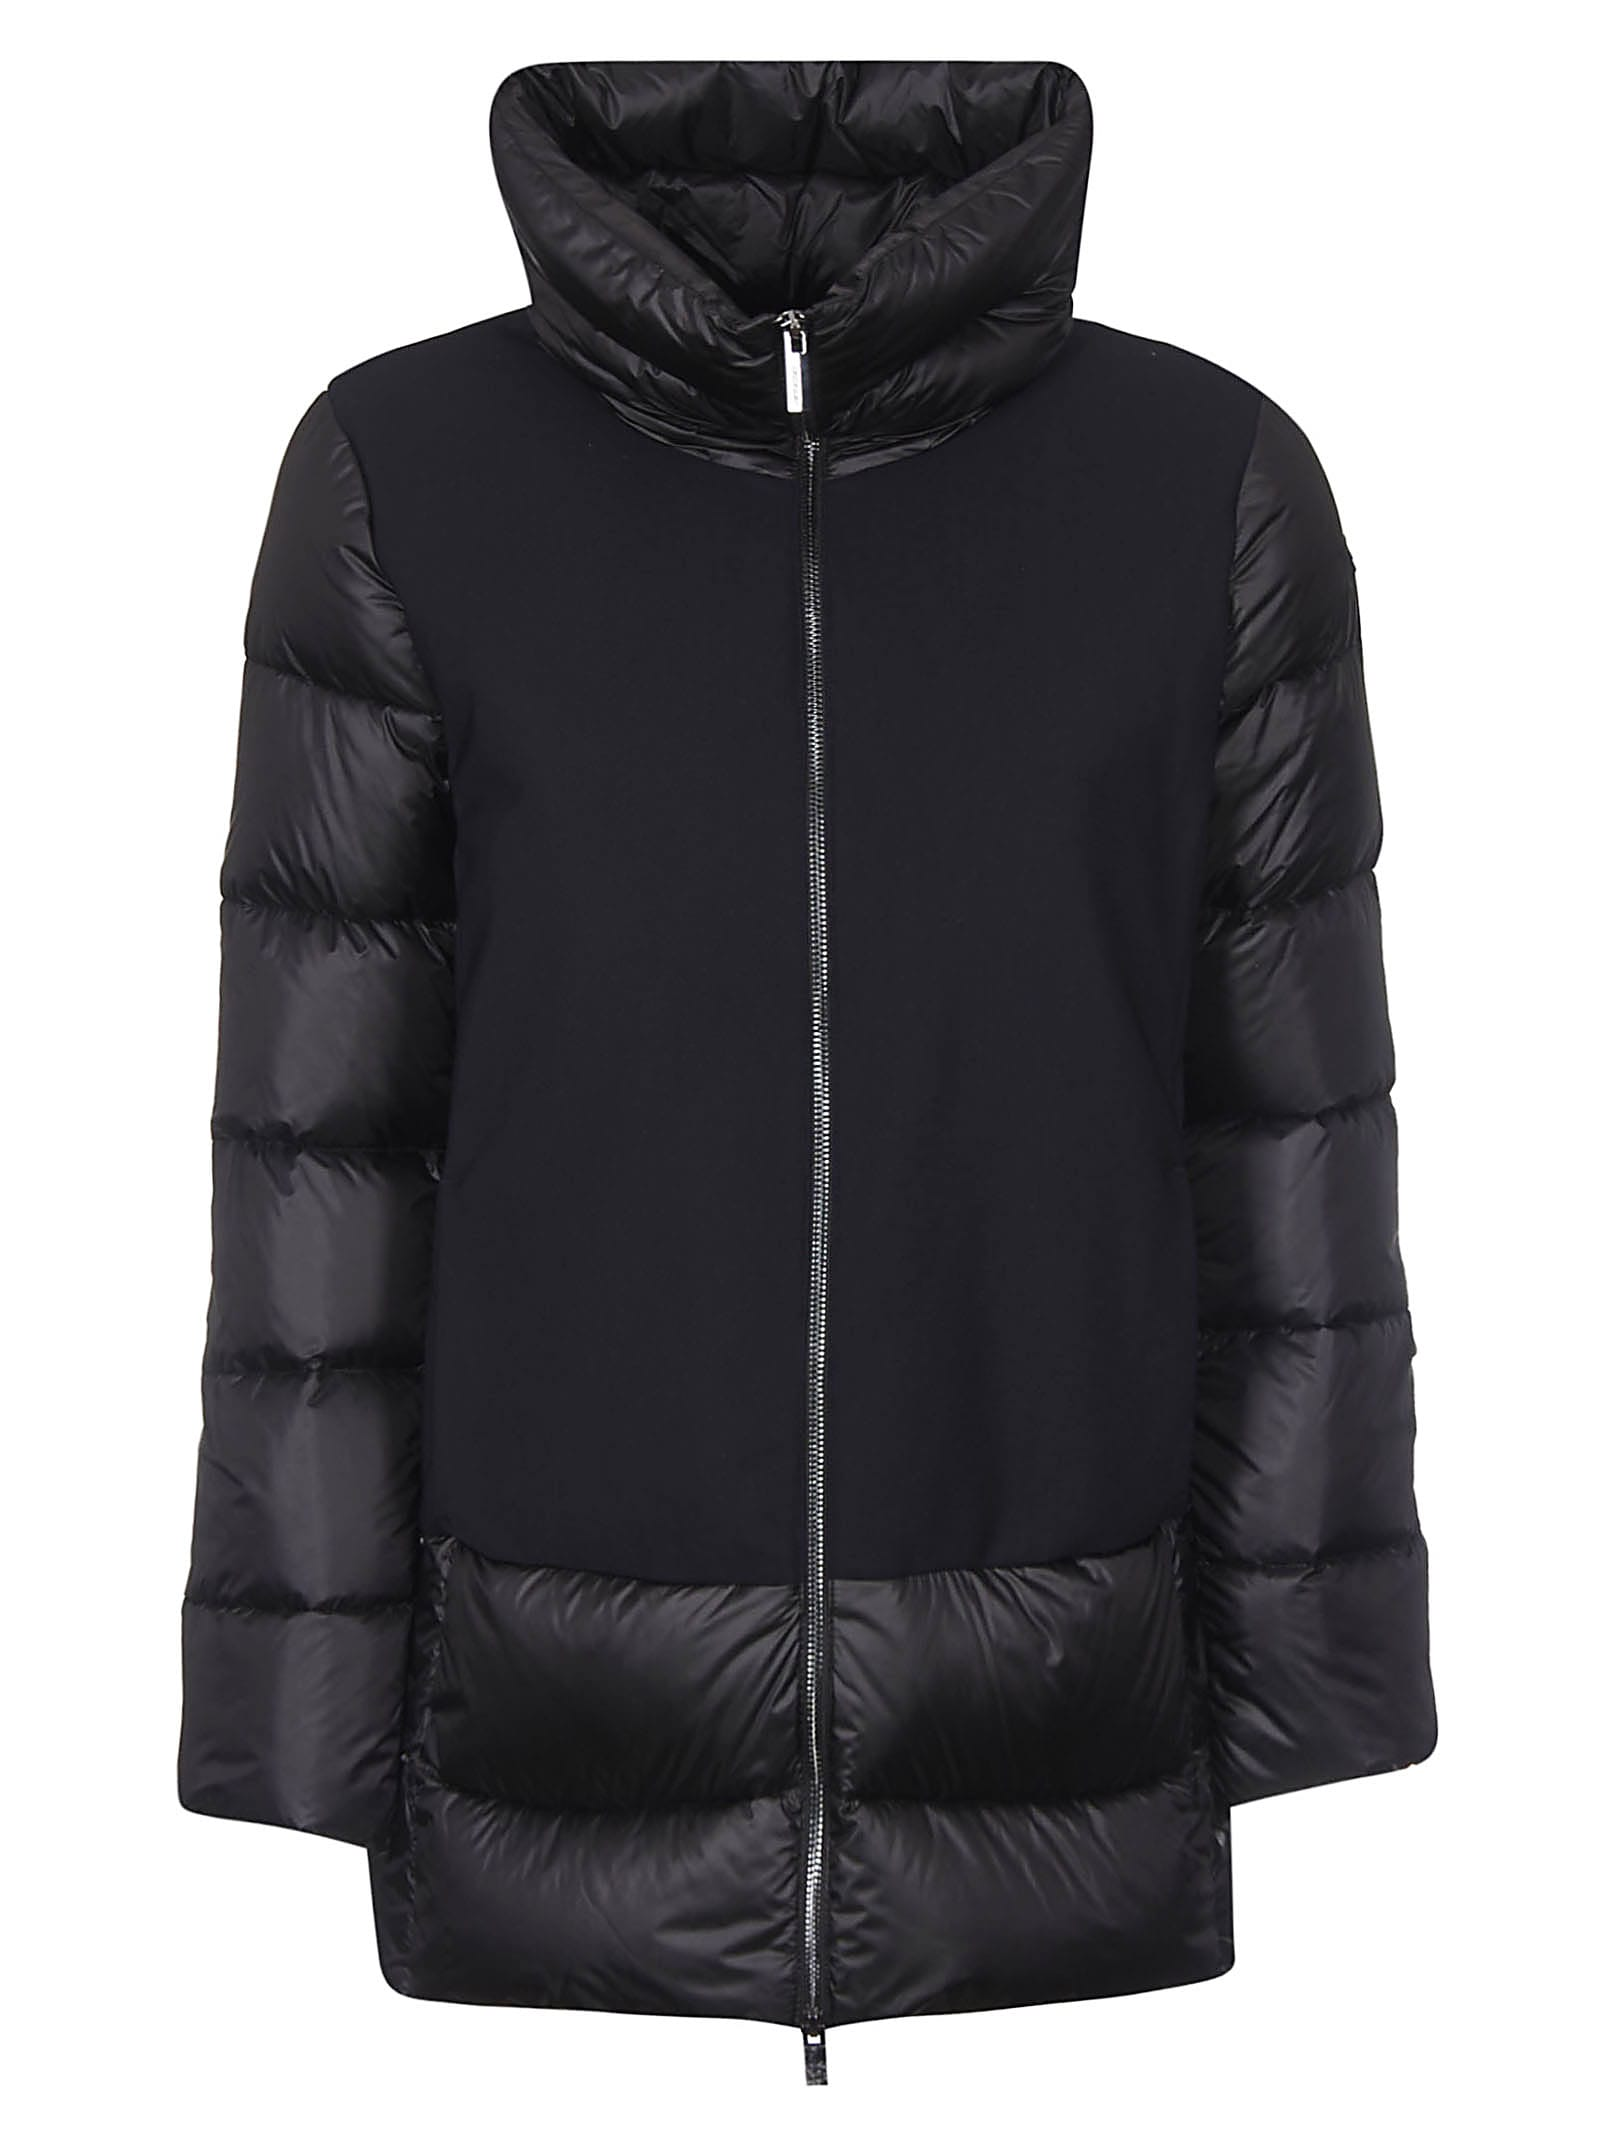 RRD – Roberto Ricci Design High Neck Padded Detail Jacket